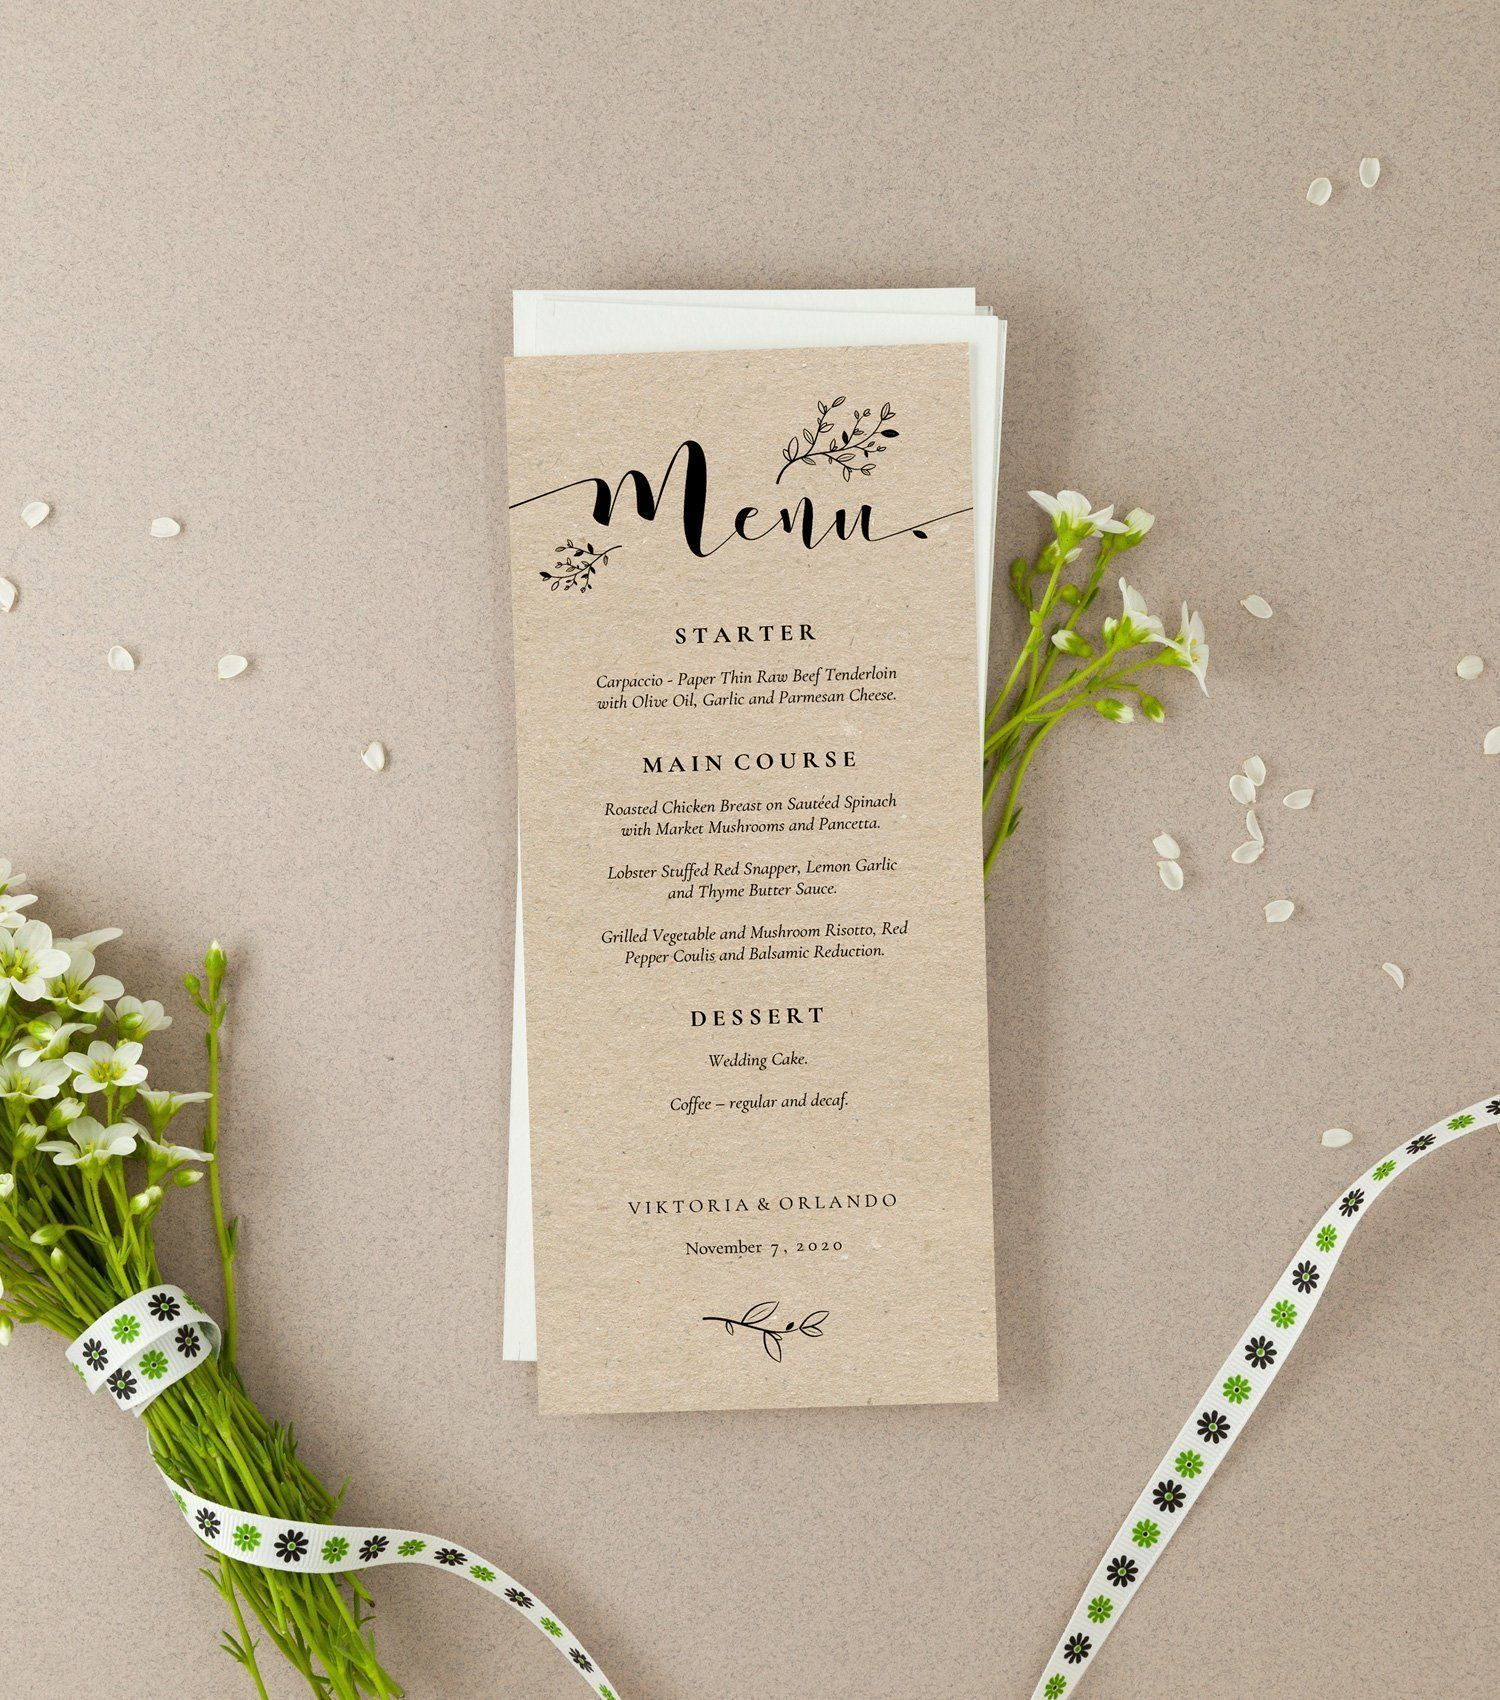 Rustic Wedding Menu Template, Floral Kraft Menu Template, Printable Menu, Editable PDF Template, Rustic Wedding Menu Card, AB07_02_009 #weddingmenutemplate Rustic Wedding Menu Template, Sophie, Floral Kraft Menu Template, Printable Menu, Editable PDF Template, Rustic Wedding Menu Card, AB07-4 by AliceBluefox on Etsy #weddingmenutemplate Rustic Wedding Menu Template, Floral Kraft Menu Template, Printable Menu, Editable PDF Template, Rustic Wedding Menu Card, AB07_02_009 #weddingmenutemplate Rusti #weddingmenutemplate